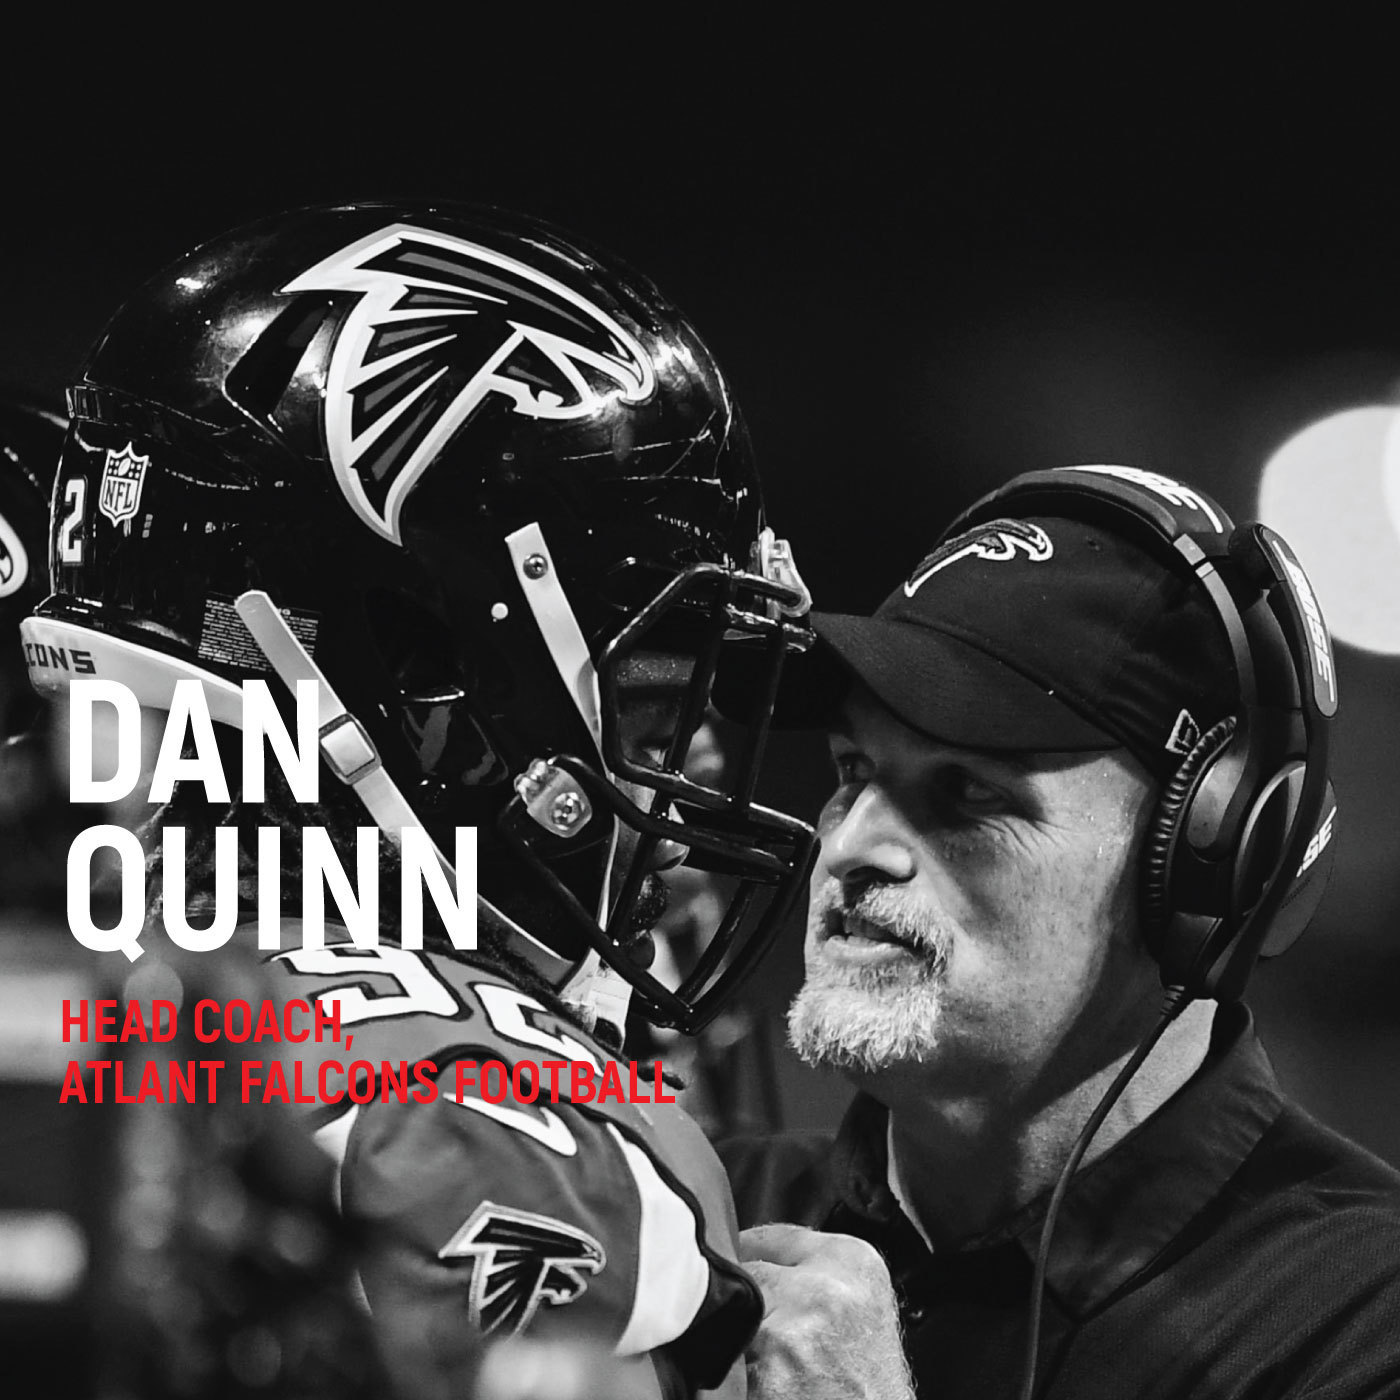 Dan Quinn - Head Coach Atlanta Falcons On The Coach/Player Relationship In An Age Of Overwhelming Data In The NFL